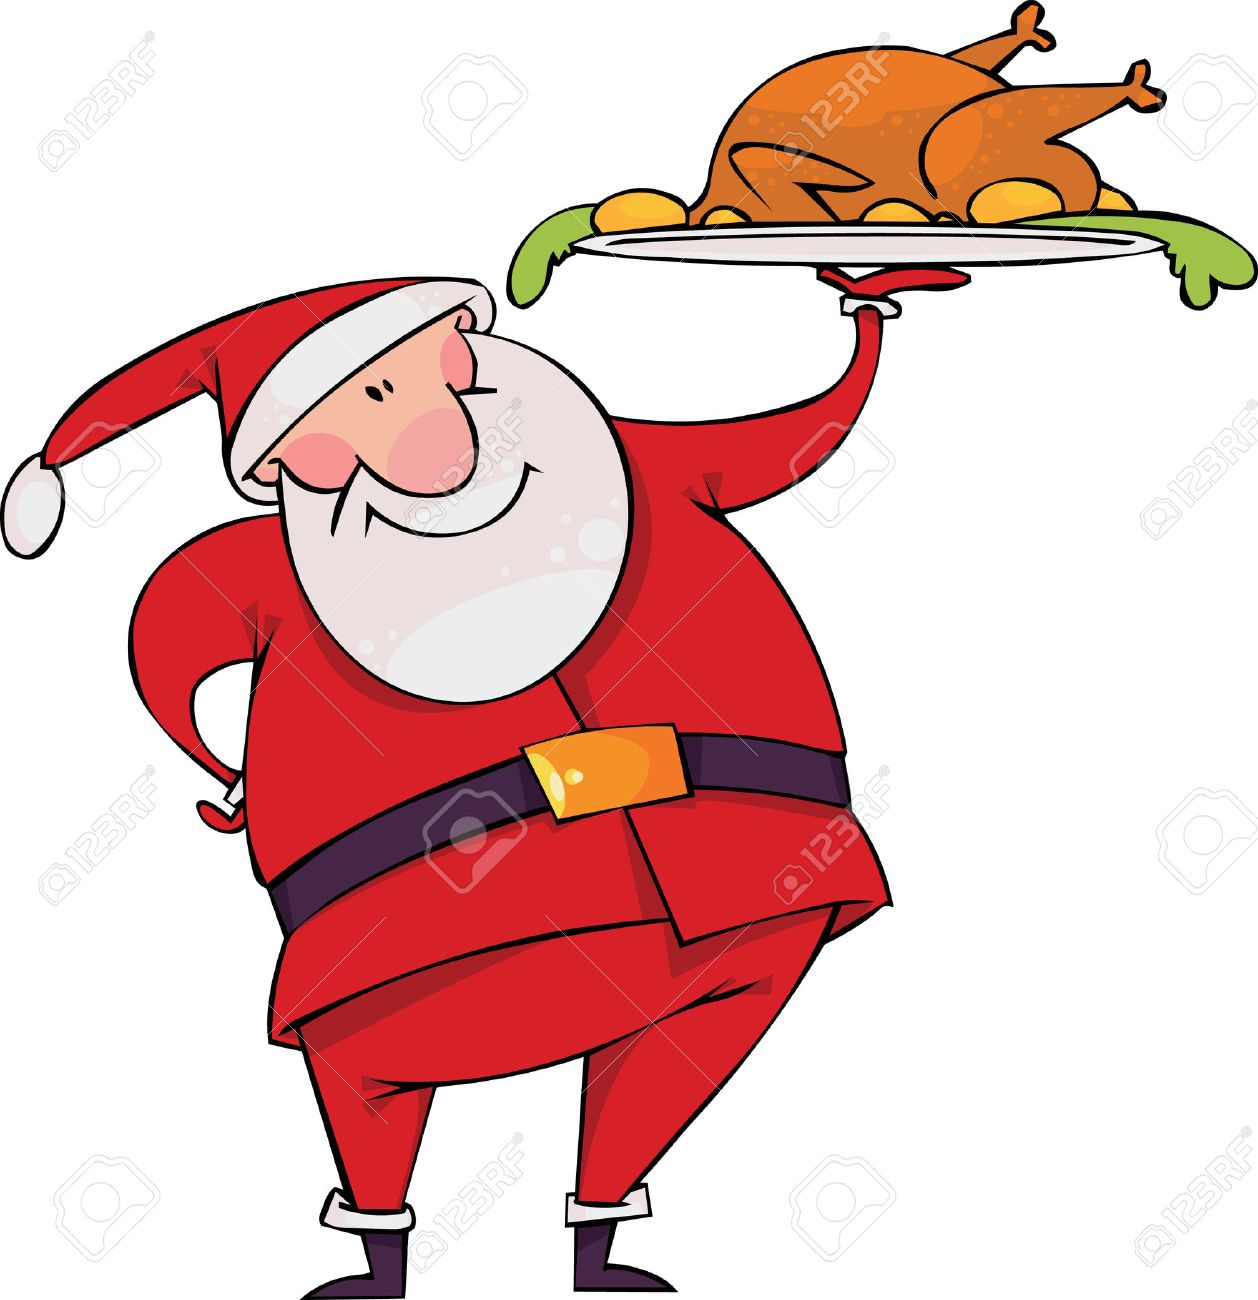 Santa with Christmas turkey Stock Vector - 8331370